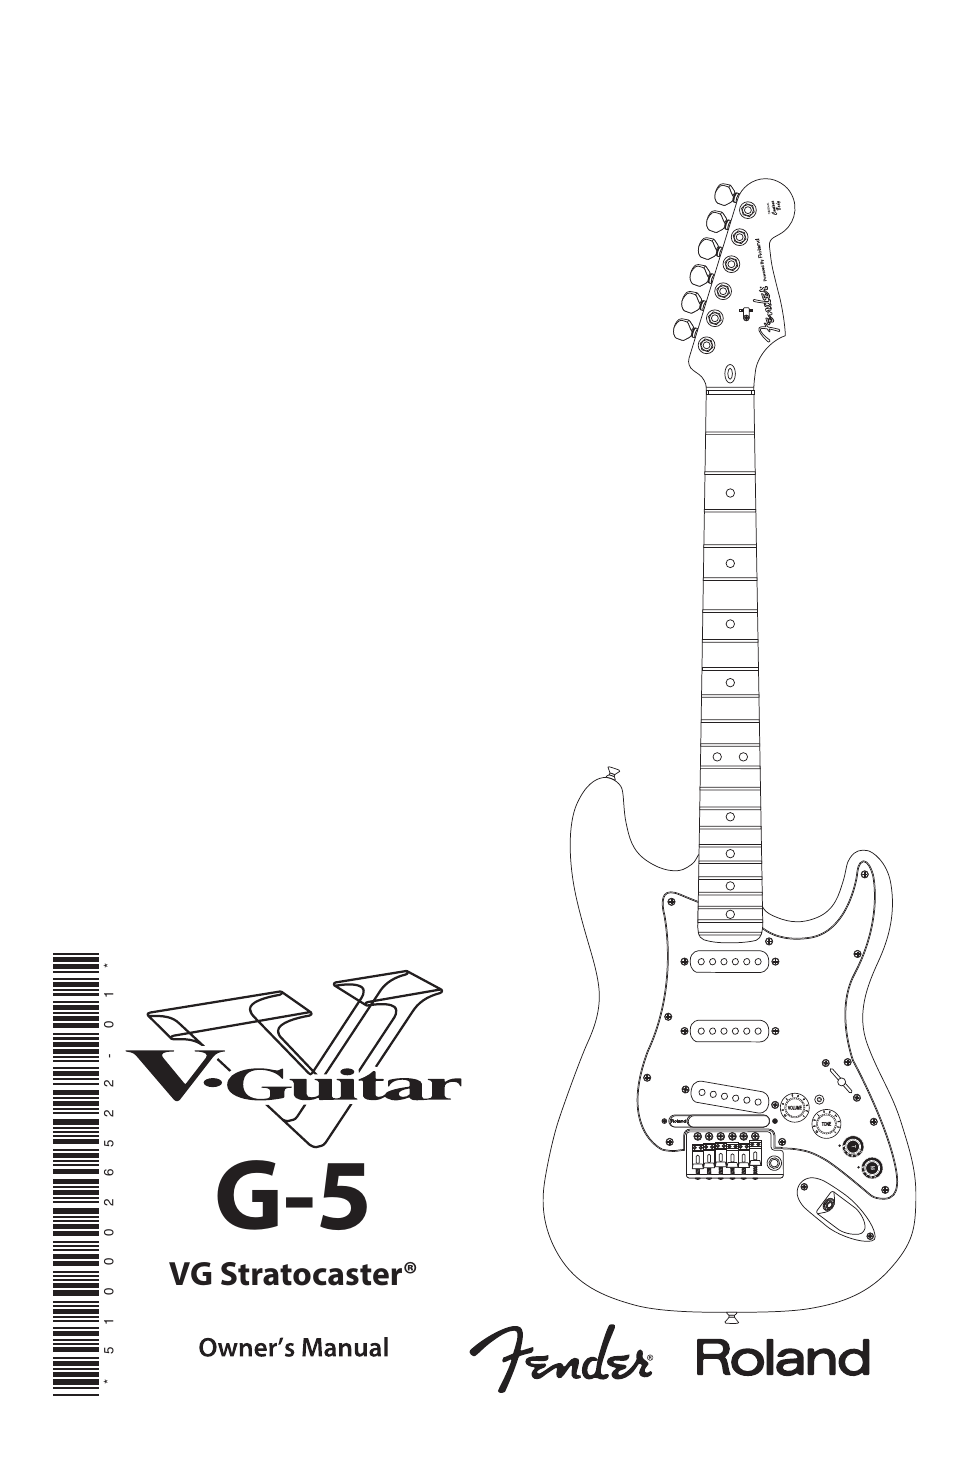 medium resolution of fender roland g 5 vg stratocaster user manual 18 pages rh manualsdir com 5 way strat switch wiring diagram fender 5 way switch wiring